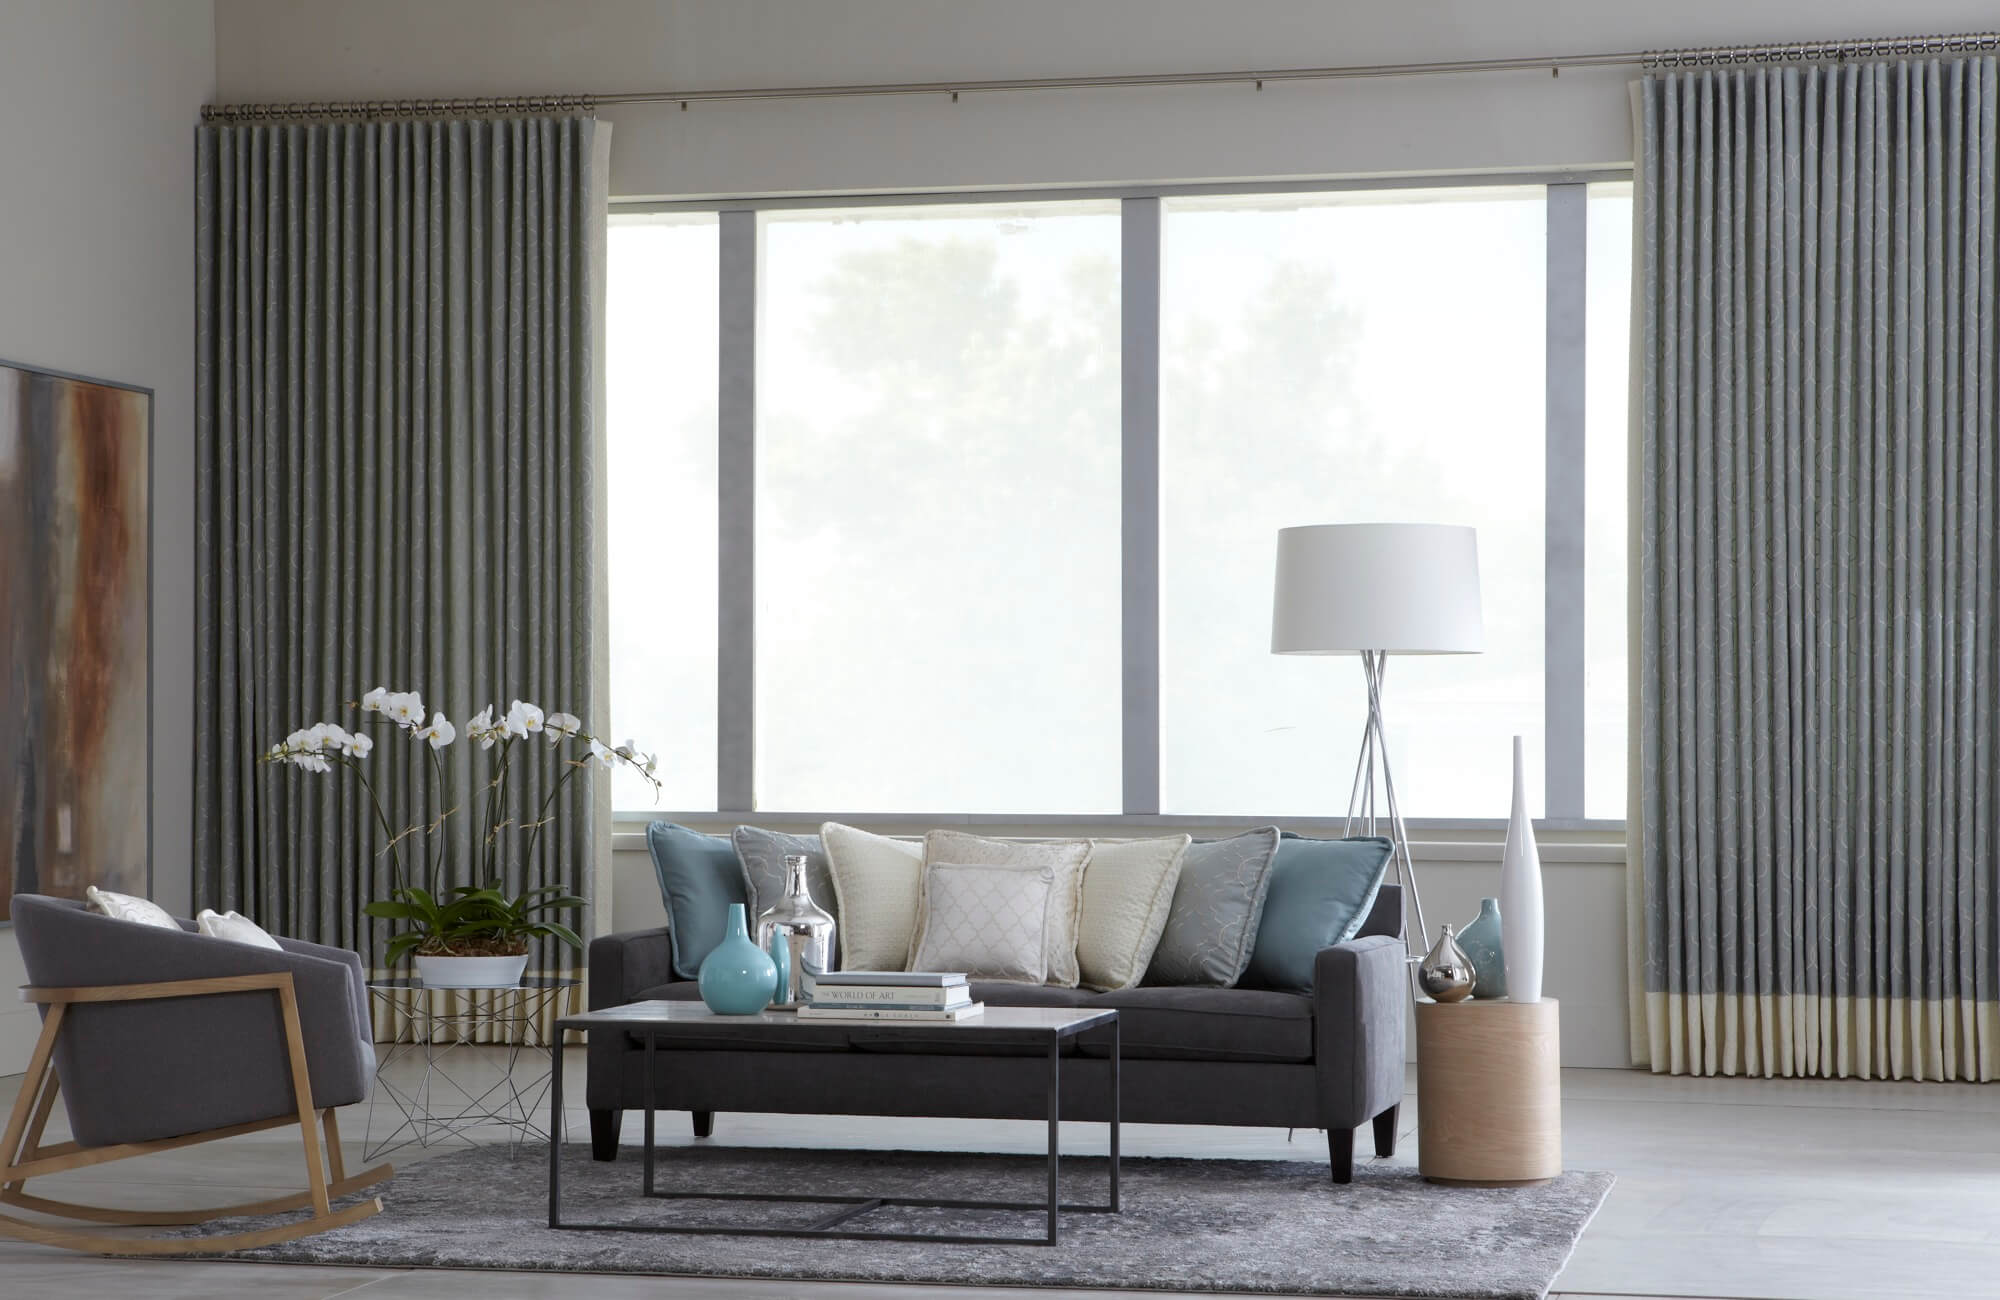 Using heavier and thicker materials for your window treatments can help raise the temperature of your room.